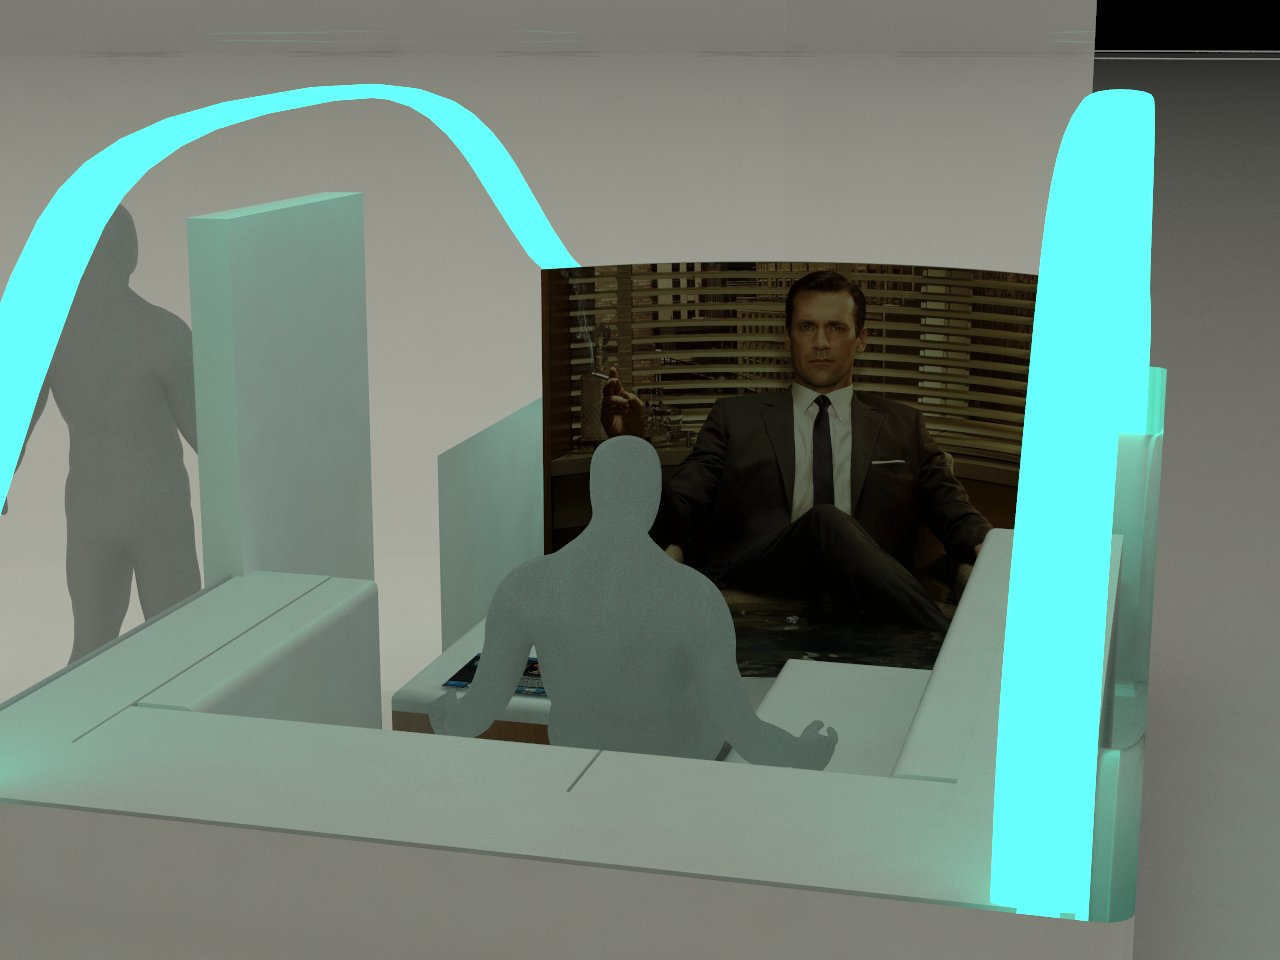 The driverless car interior: replace the windshield with a large screen, so you can surf the web or watch a movie while you barrel down the freeway. Image: